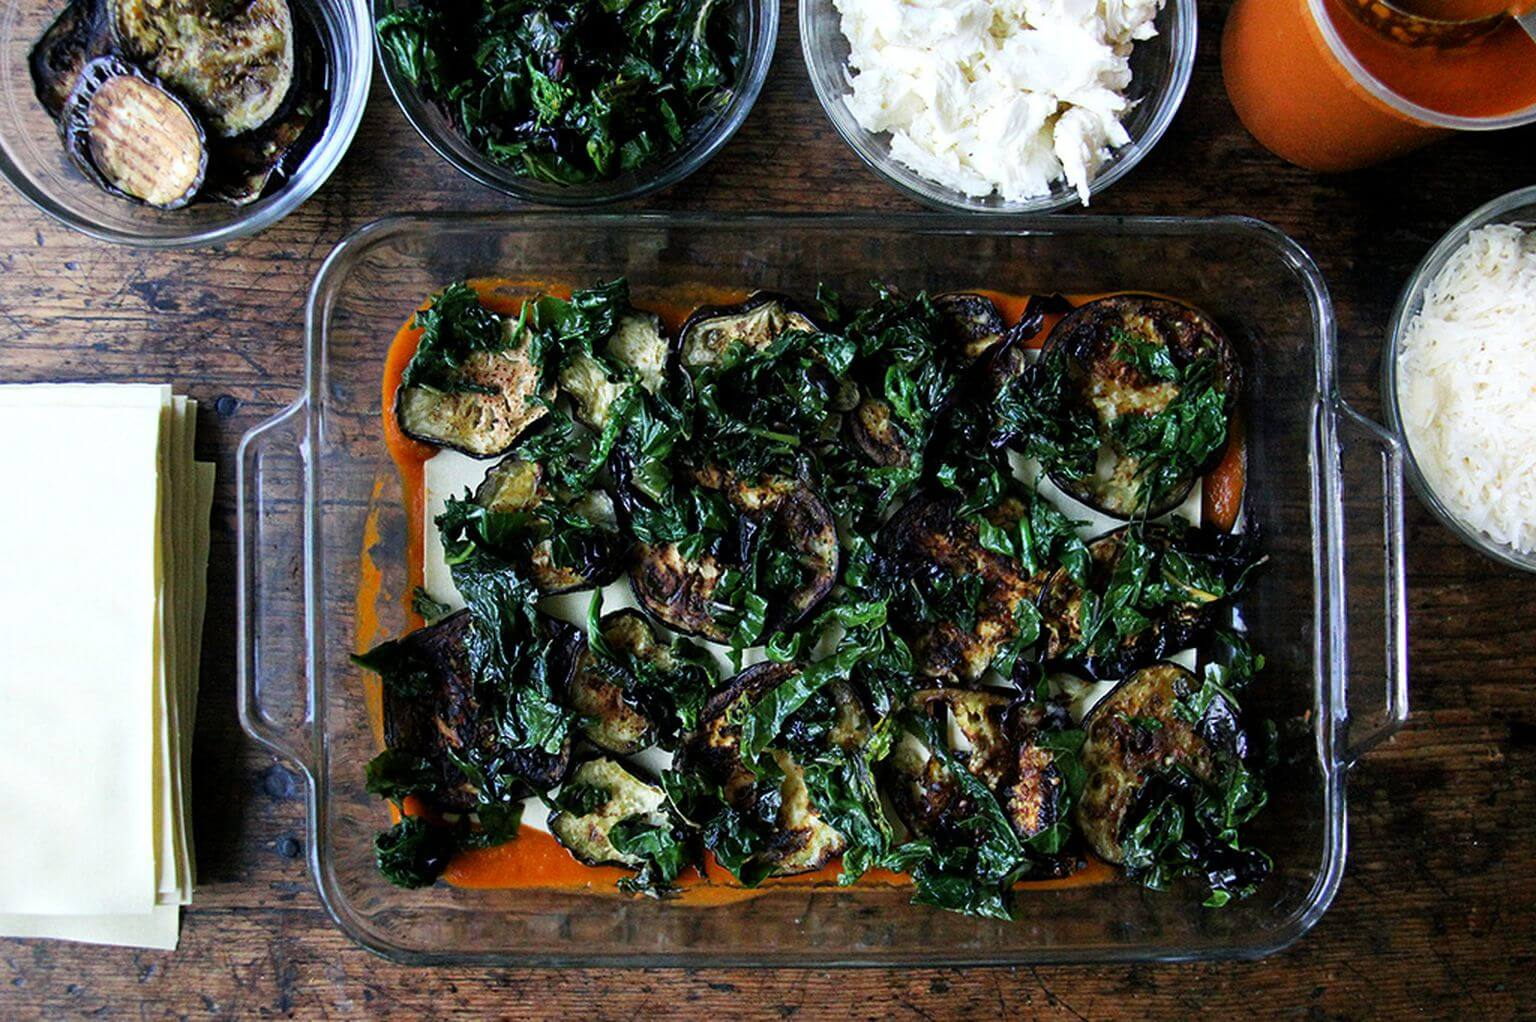 A layer of vegetables in roasted eggplant Swiss chard lasagna